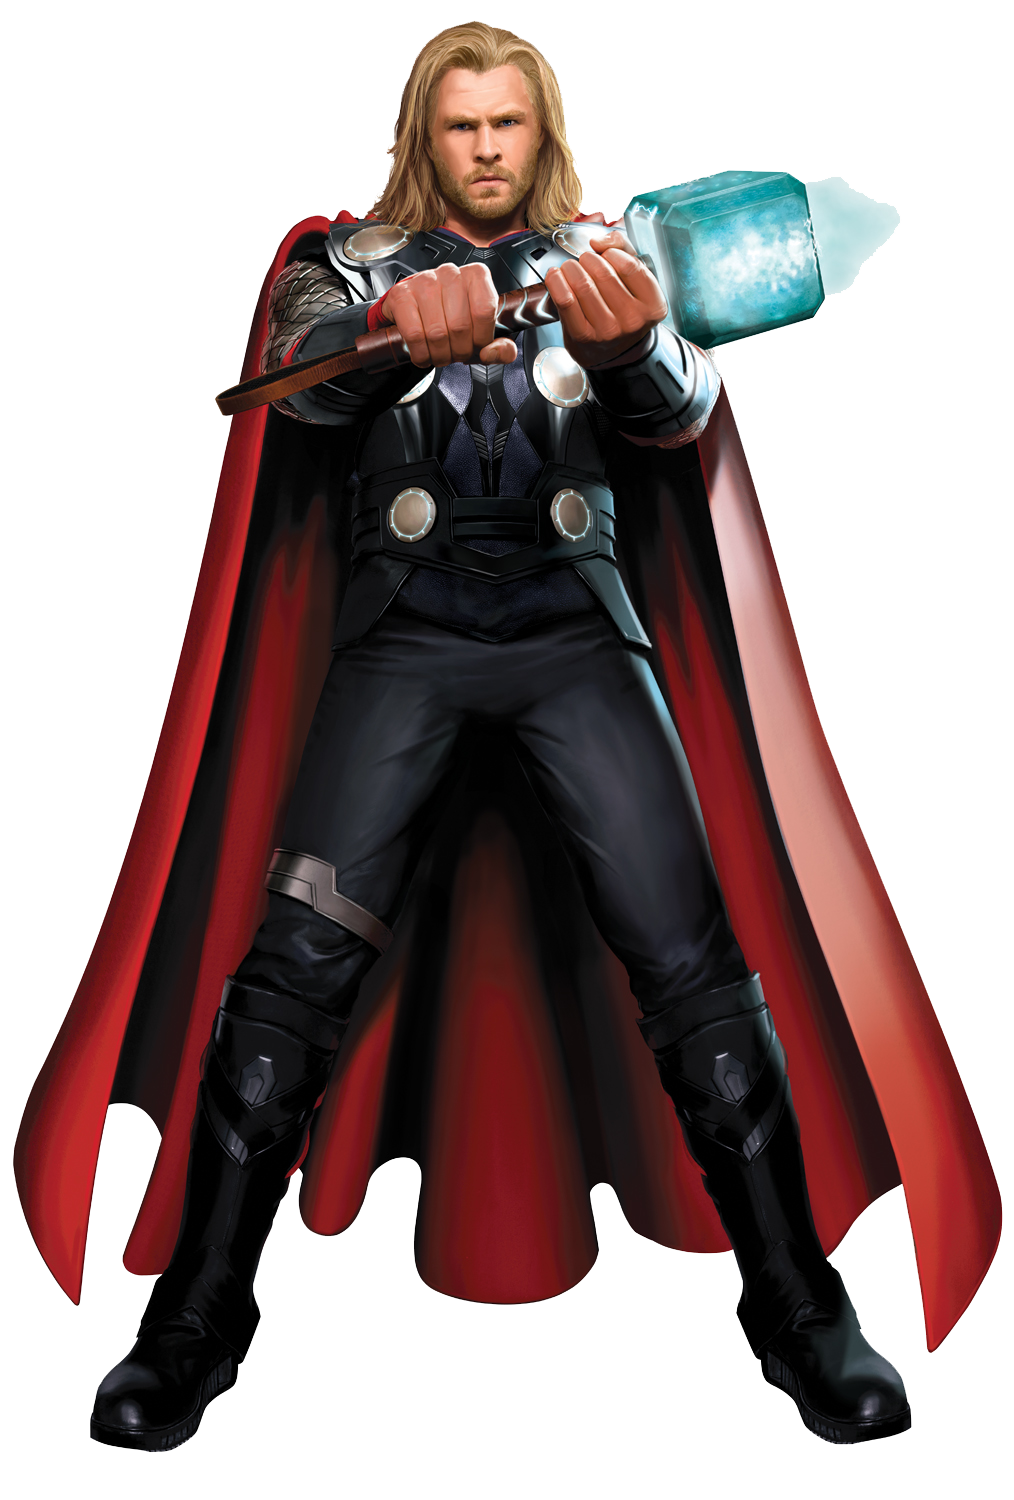 Thor Free Png Image PNG Image - Thor HD PNG